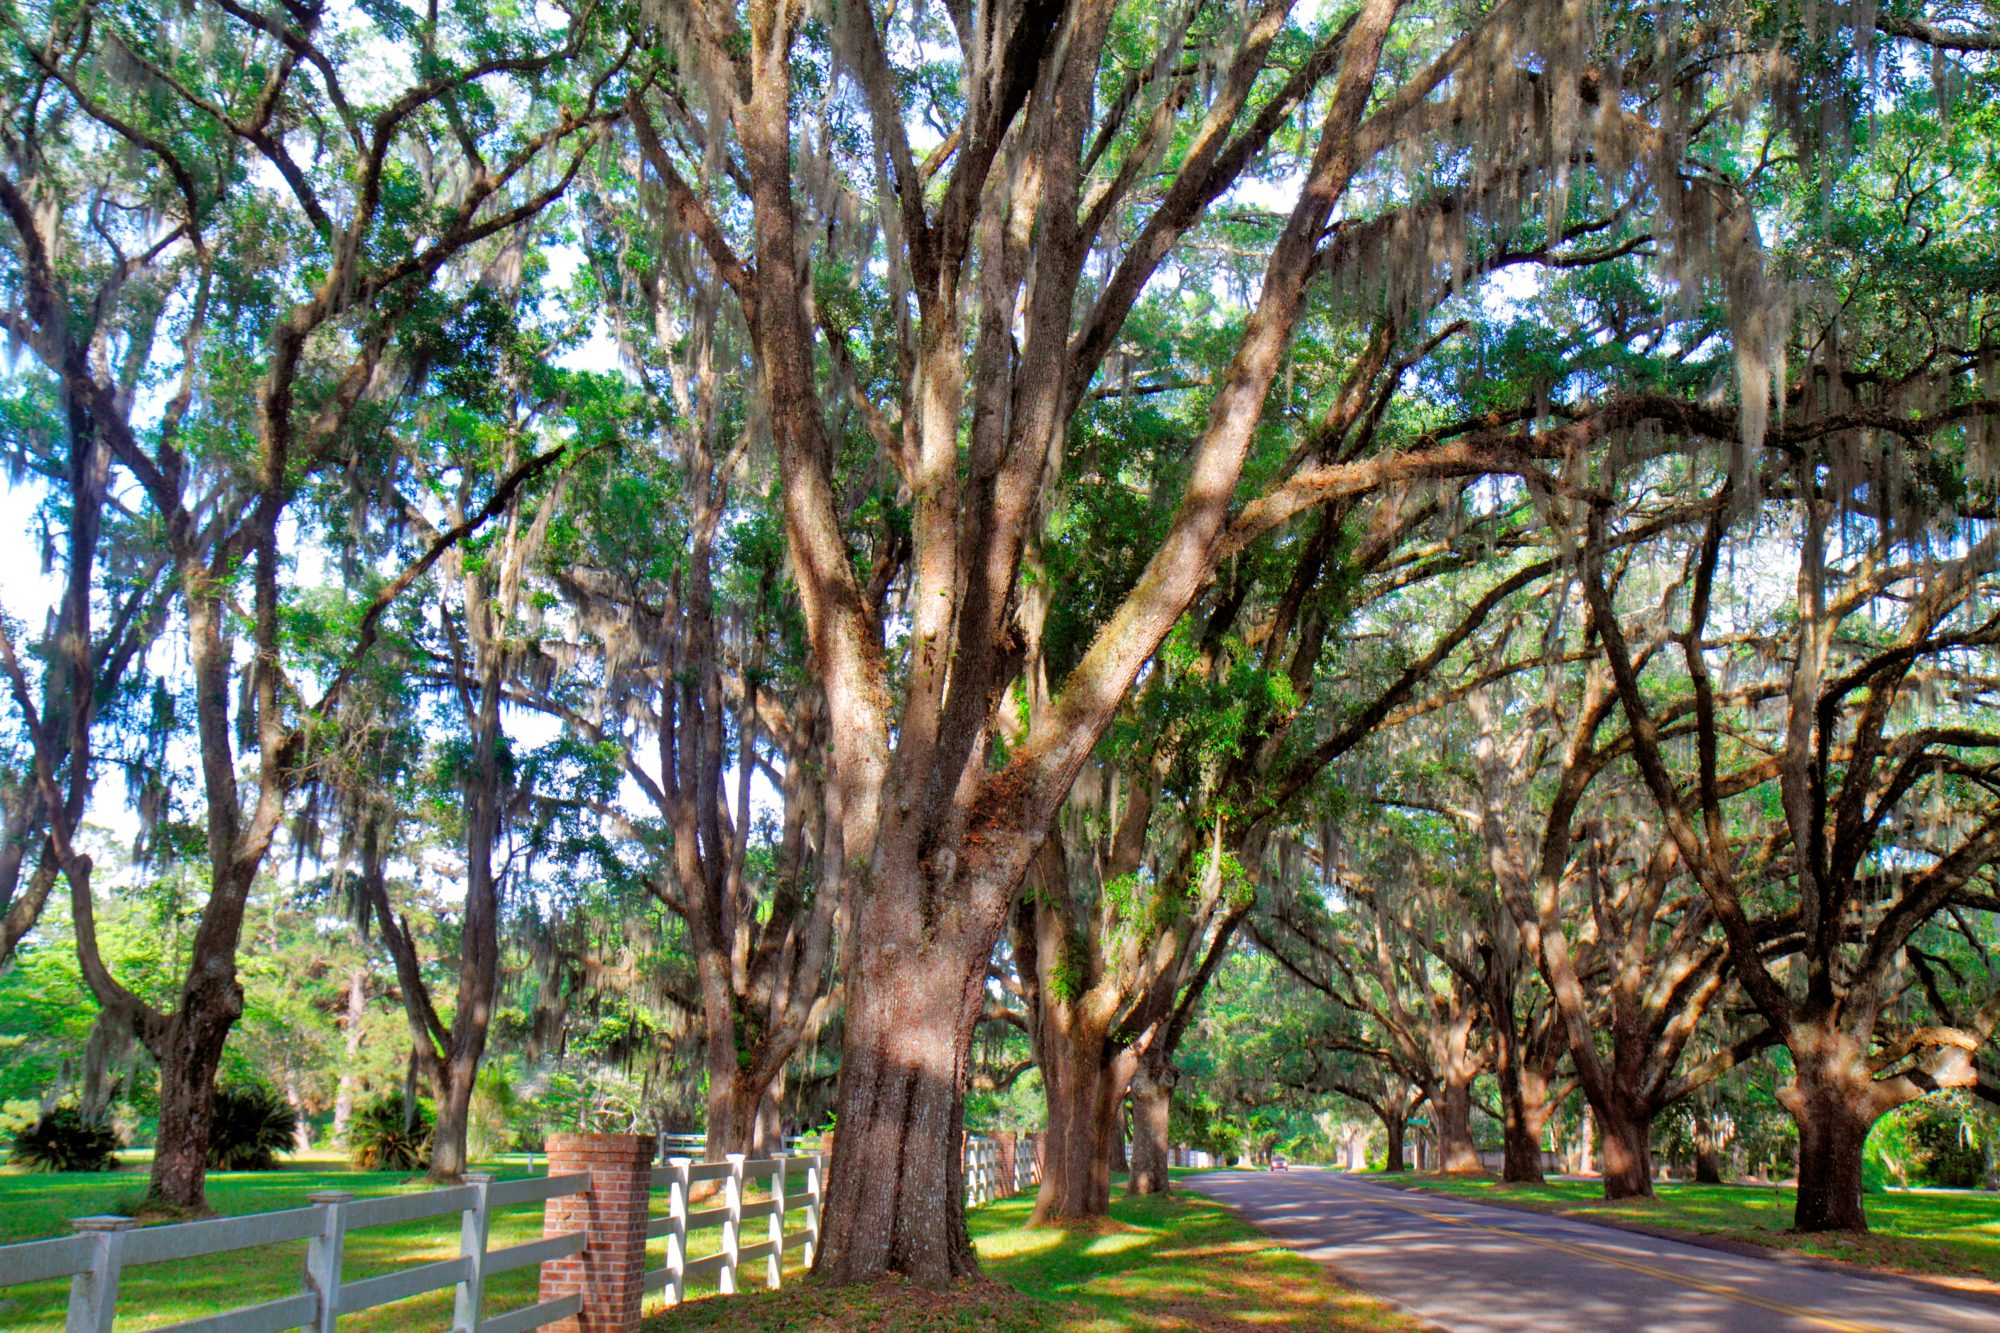 Leon County Canopy Roads in Florida